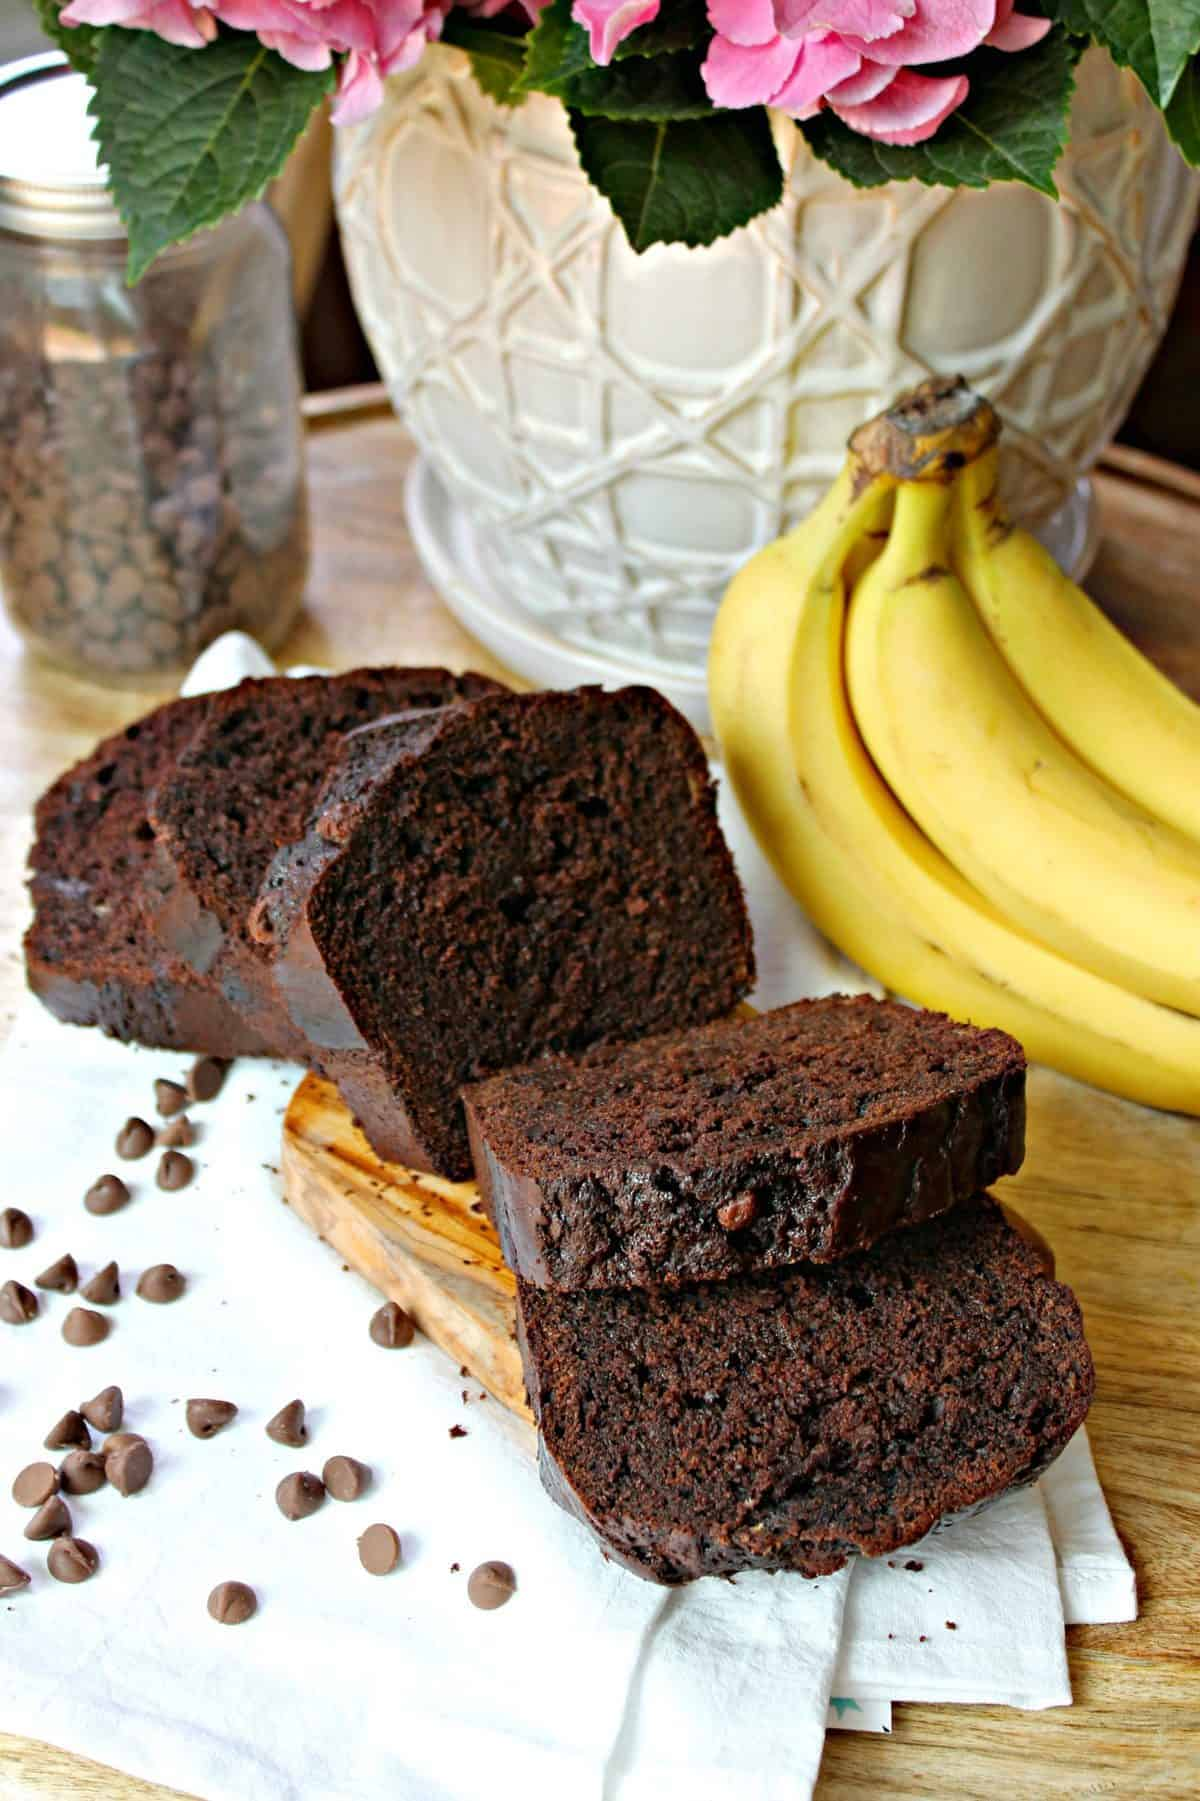 A sliced loaf of Double Chocolate Banana Bread on a wood cutting board surrounded by chocolate chips with bananas in the background.